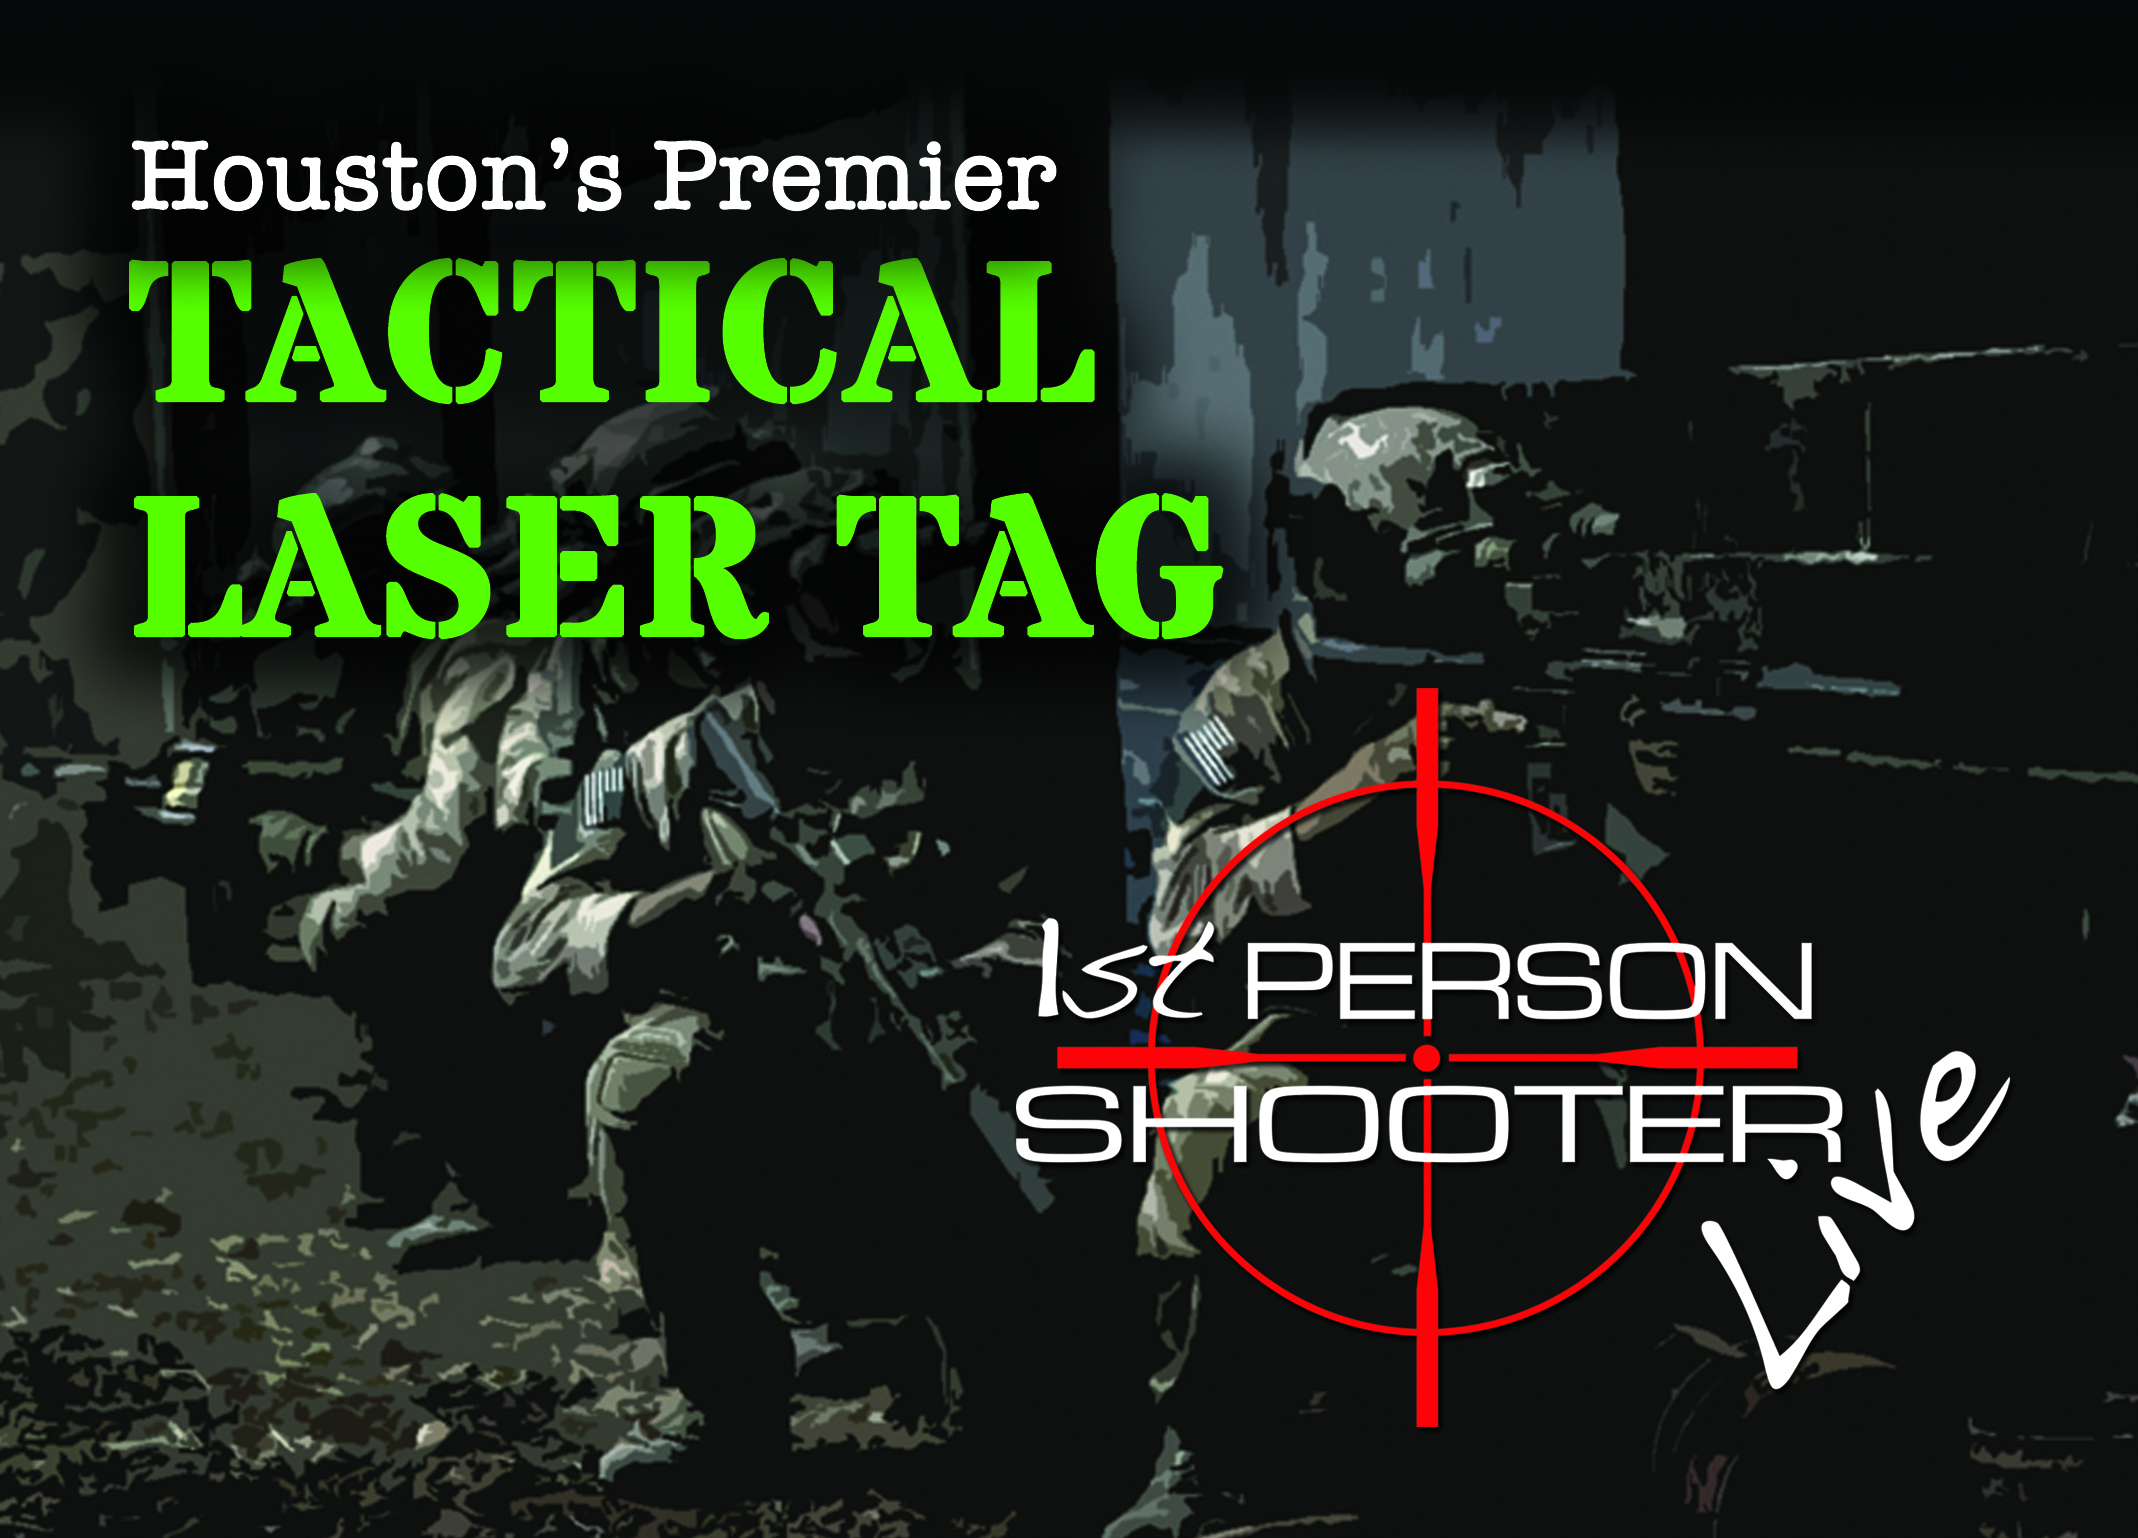 1st Person Shooter Live